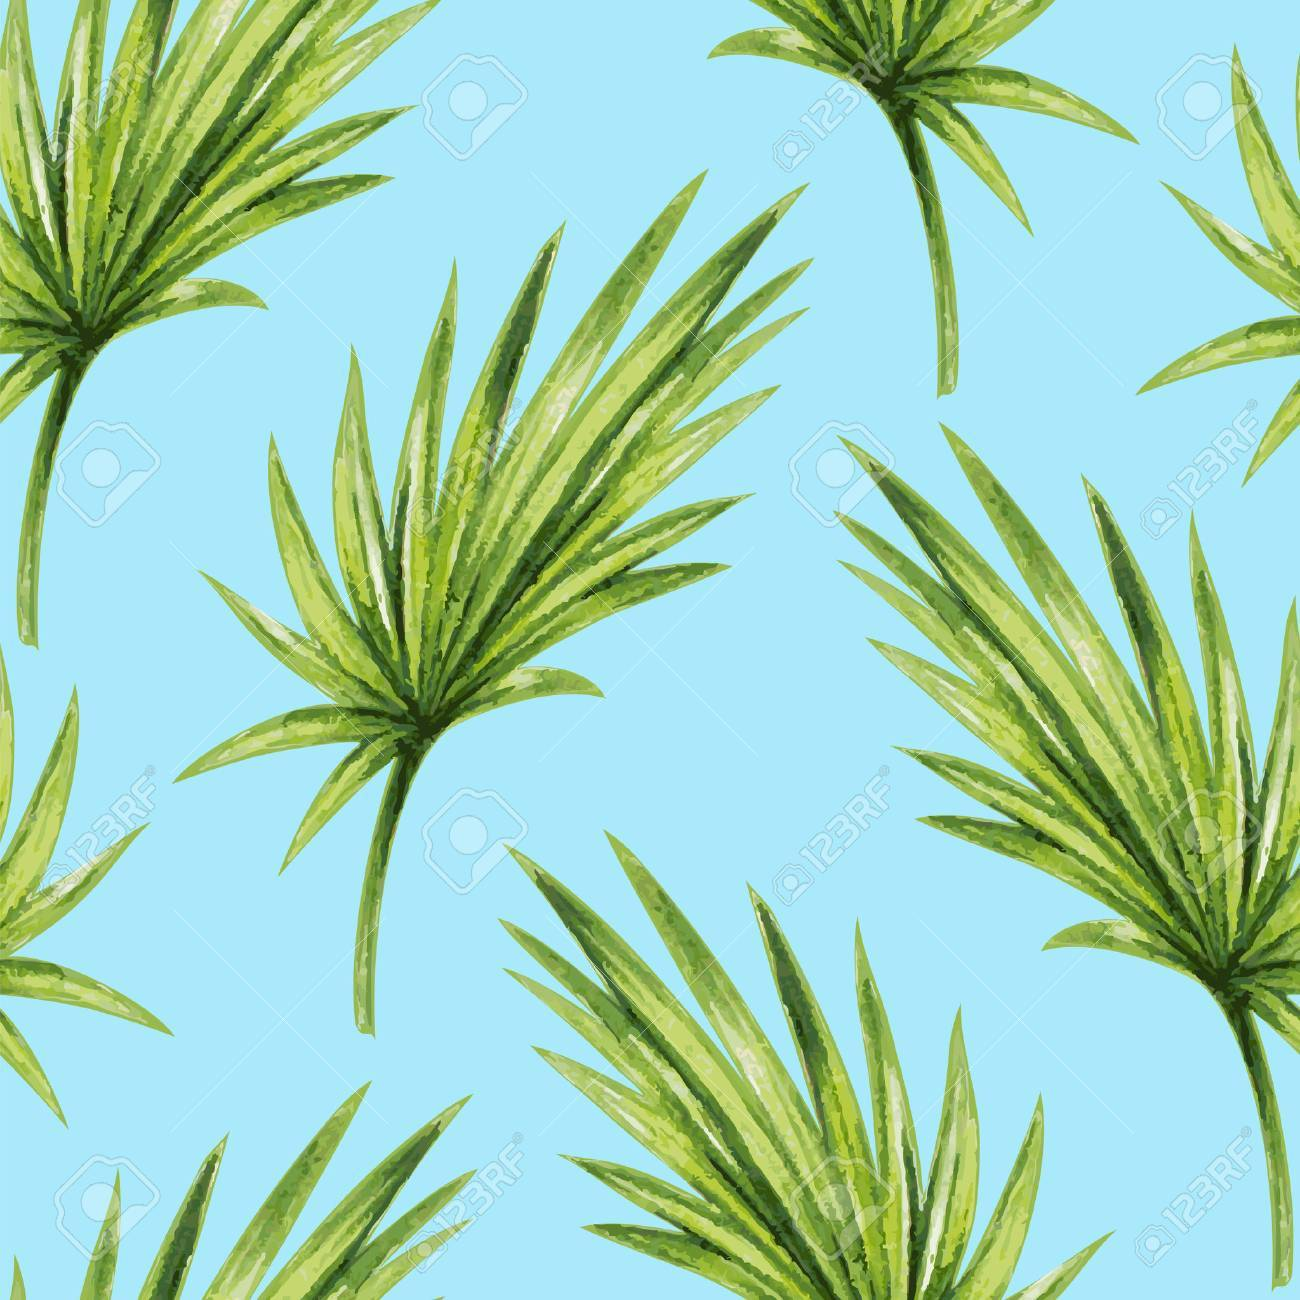 Watercolor tropical palm leaves seamless pattern - 45007991